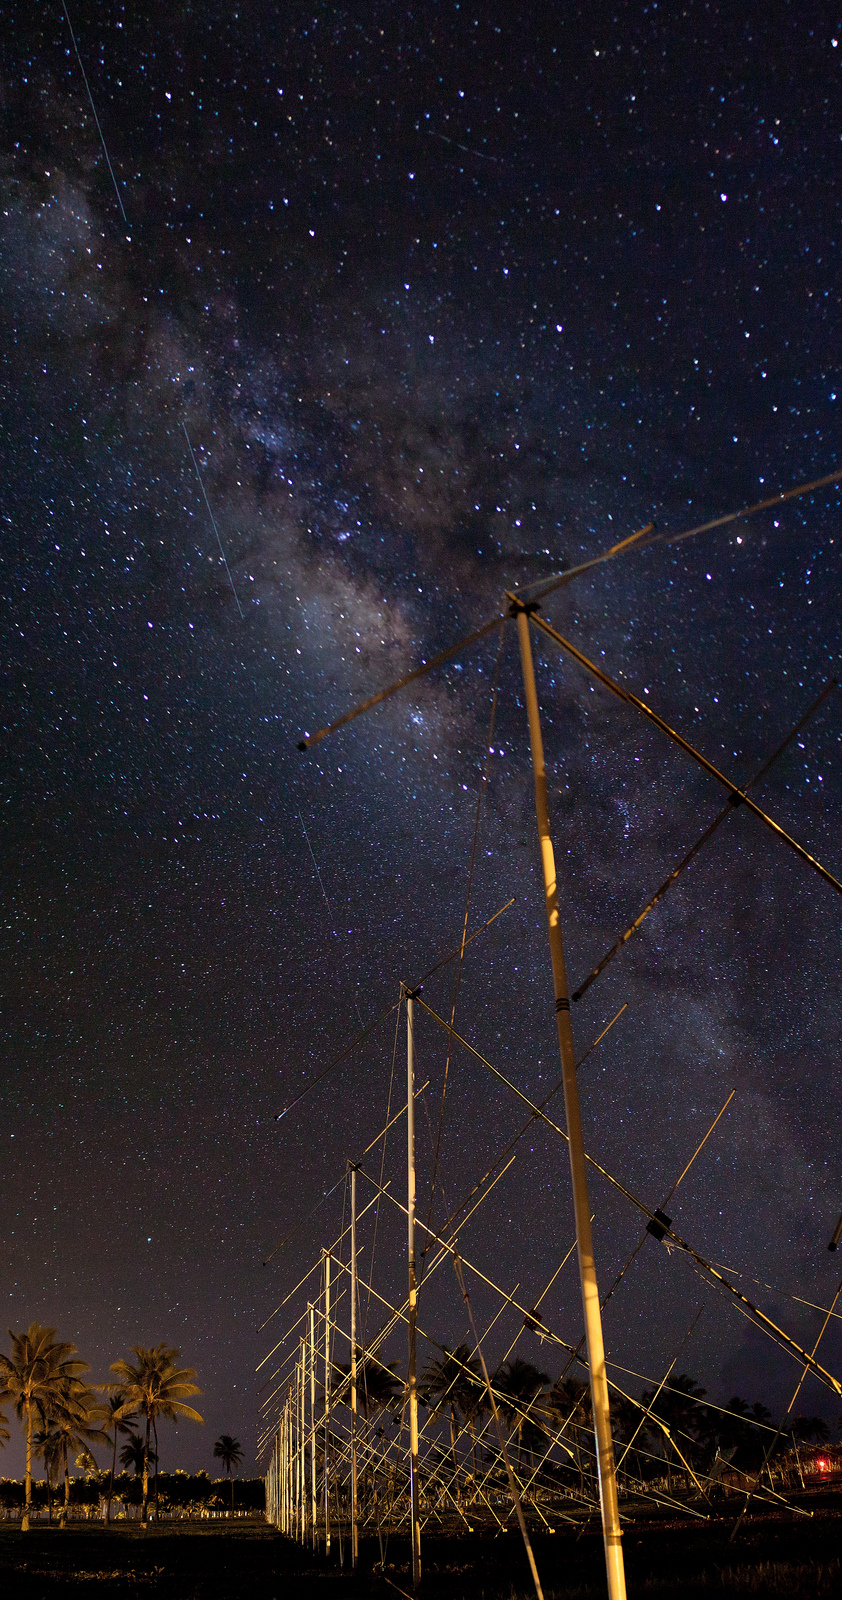 Milky Way and the Antenna2